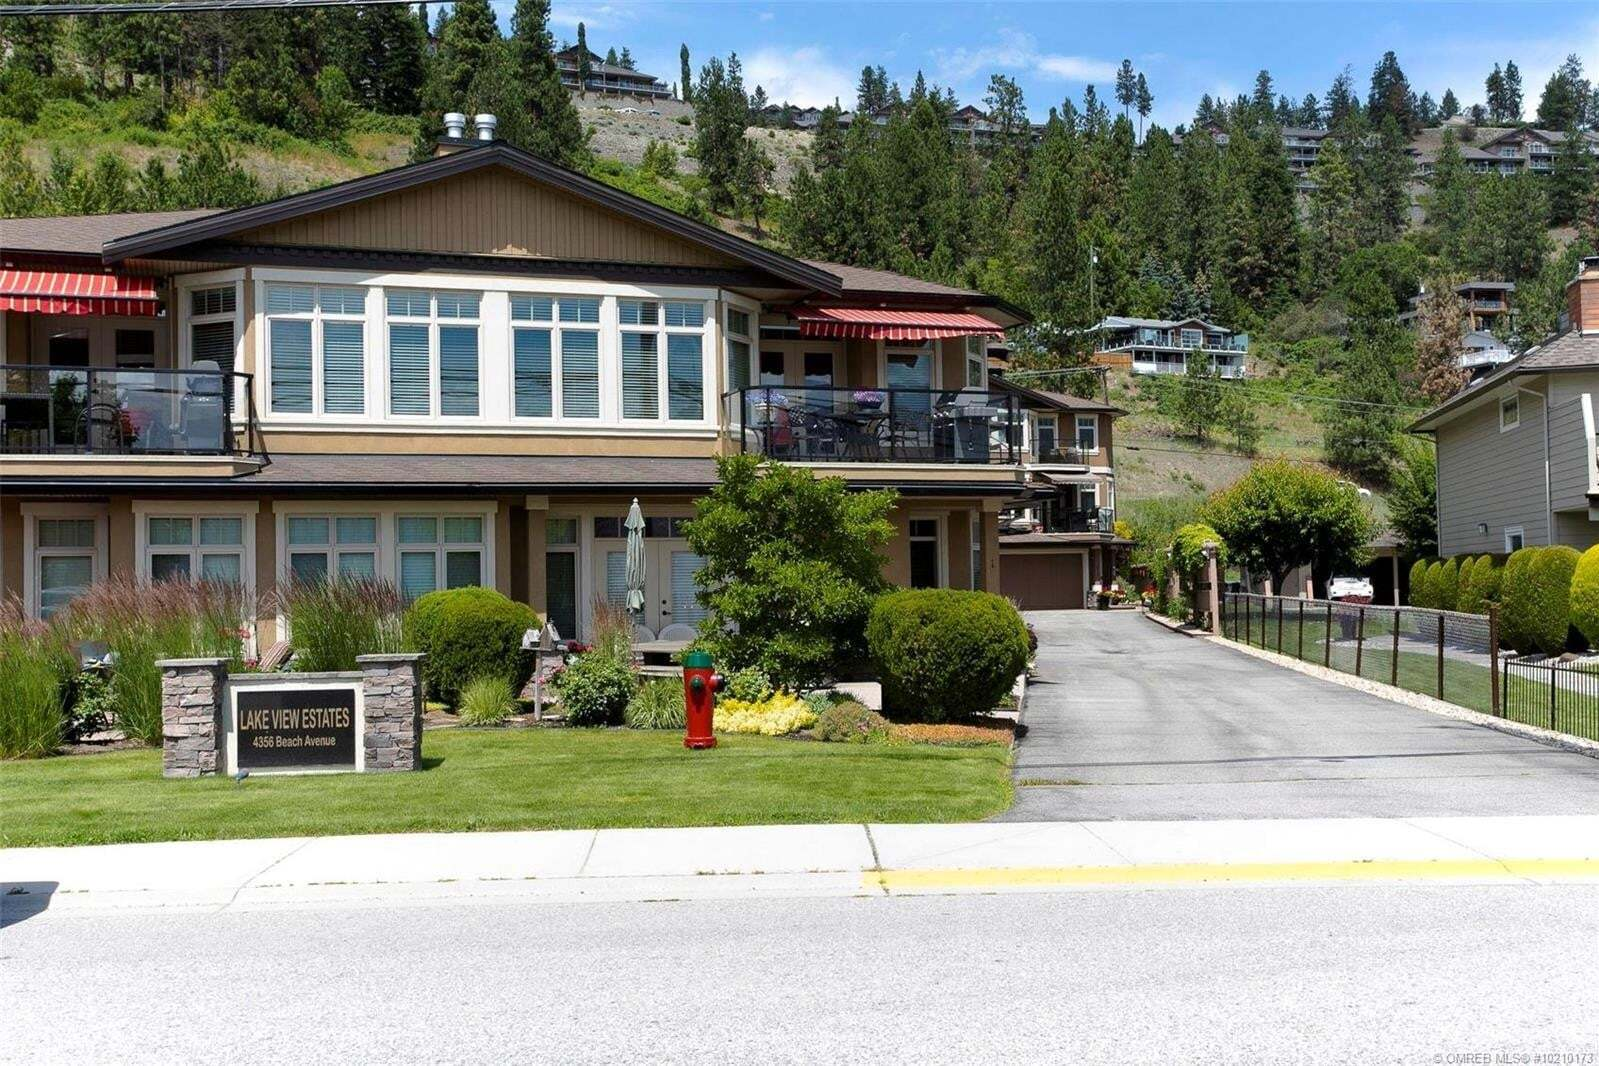 Townhouse for sale at 4356 Beach Ave Peachland British Columbia - MLS: 10210173